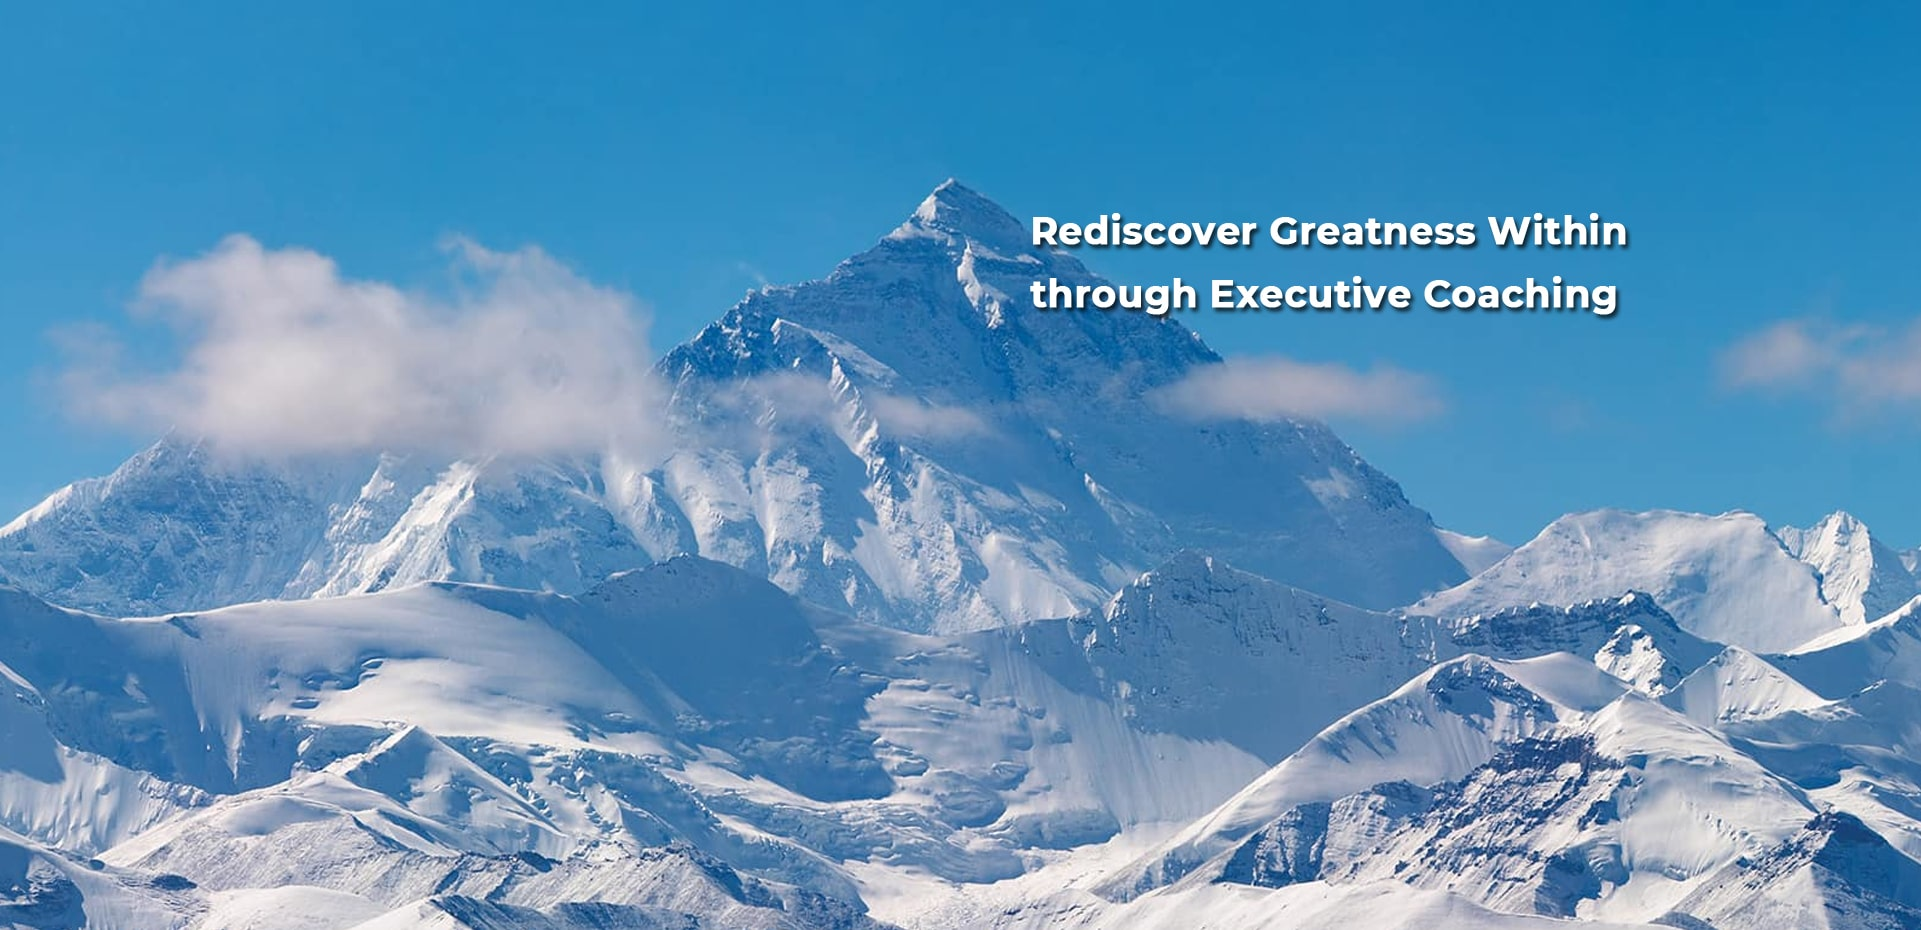 Motivation Quote by Kshitij about Executive Coaching,